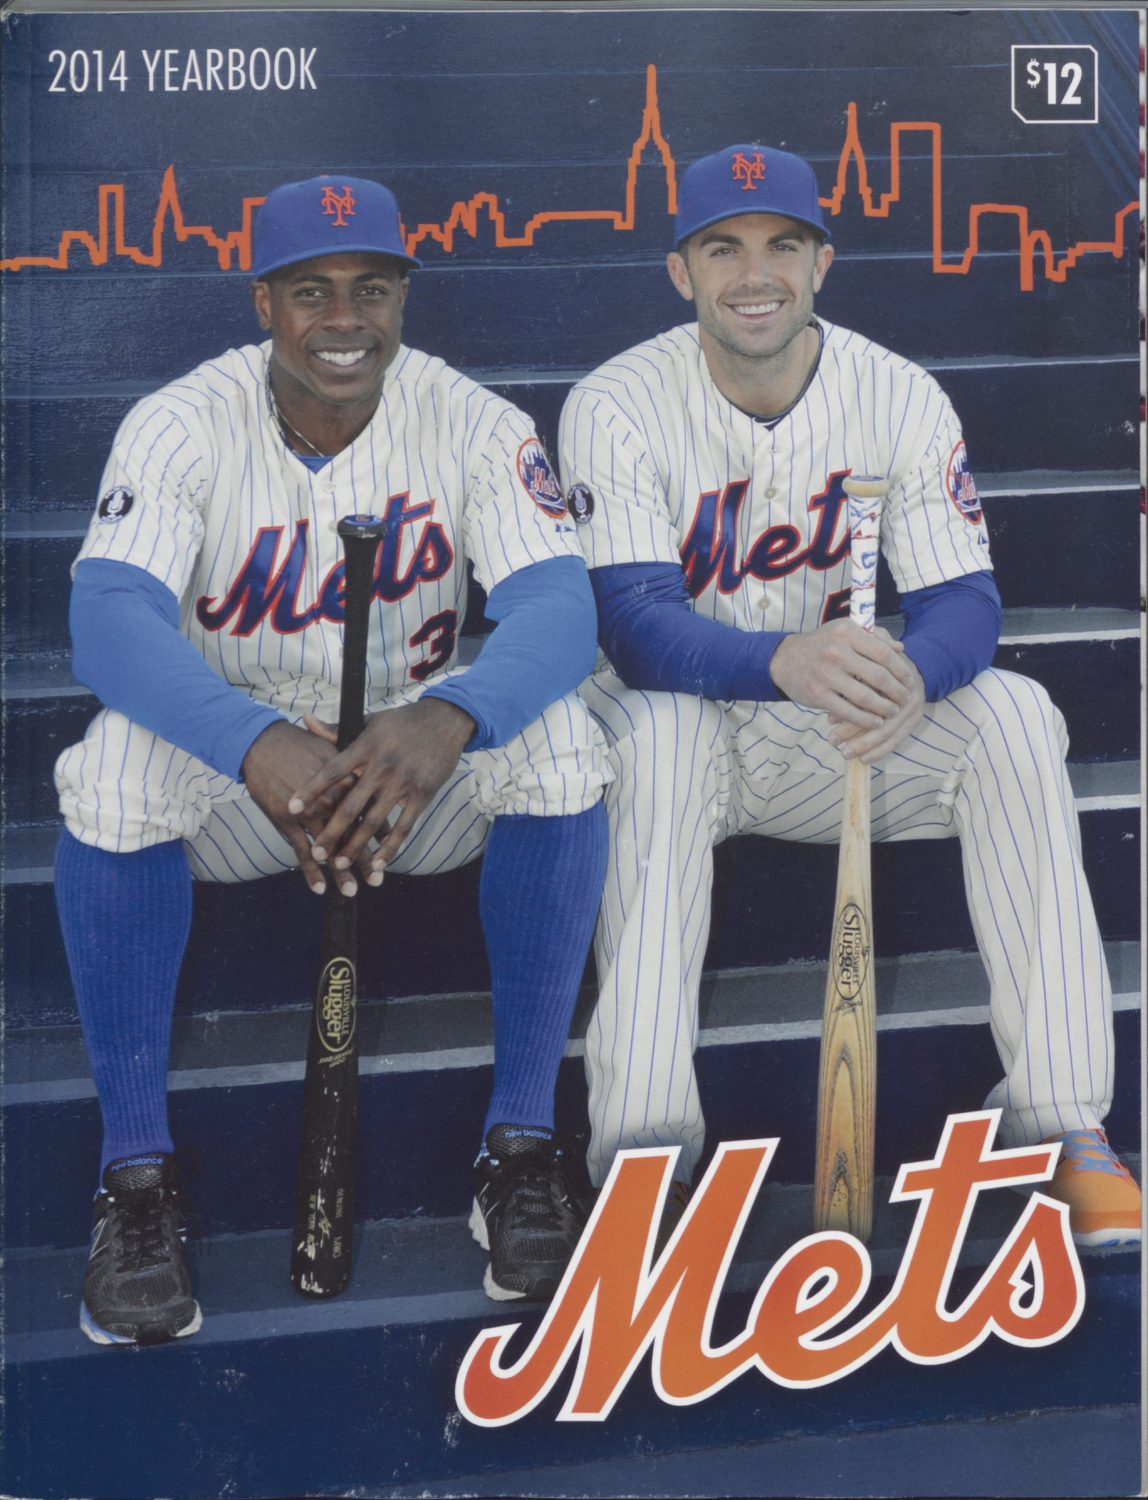 2014 New York Mets Yearbook Featuring Granderson & Wright